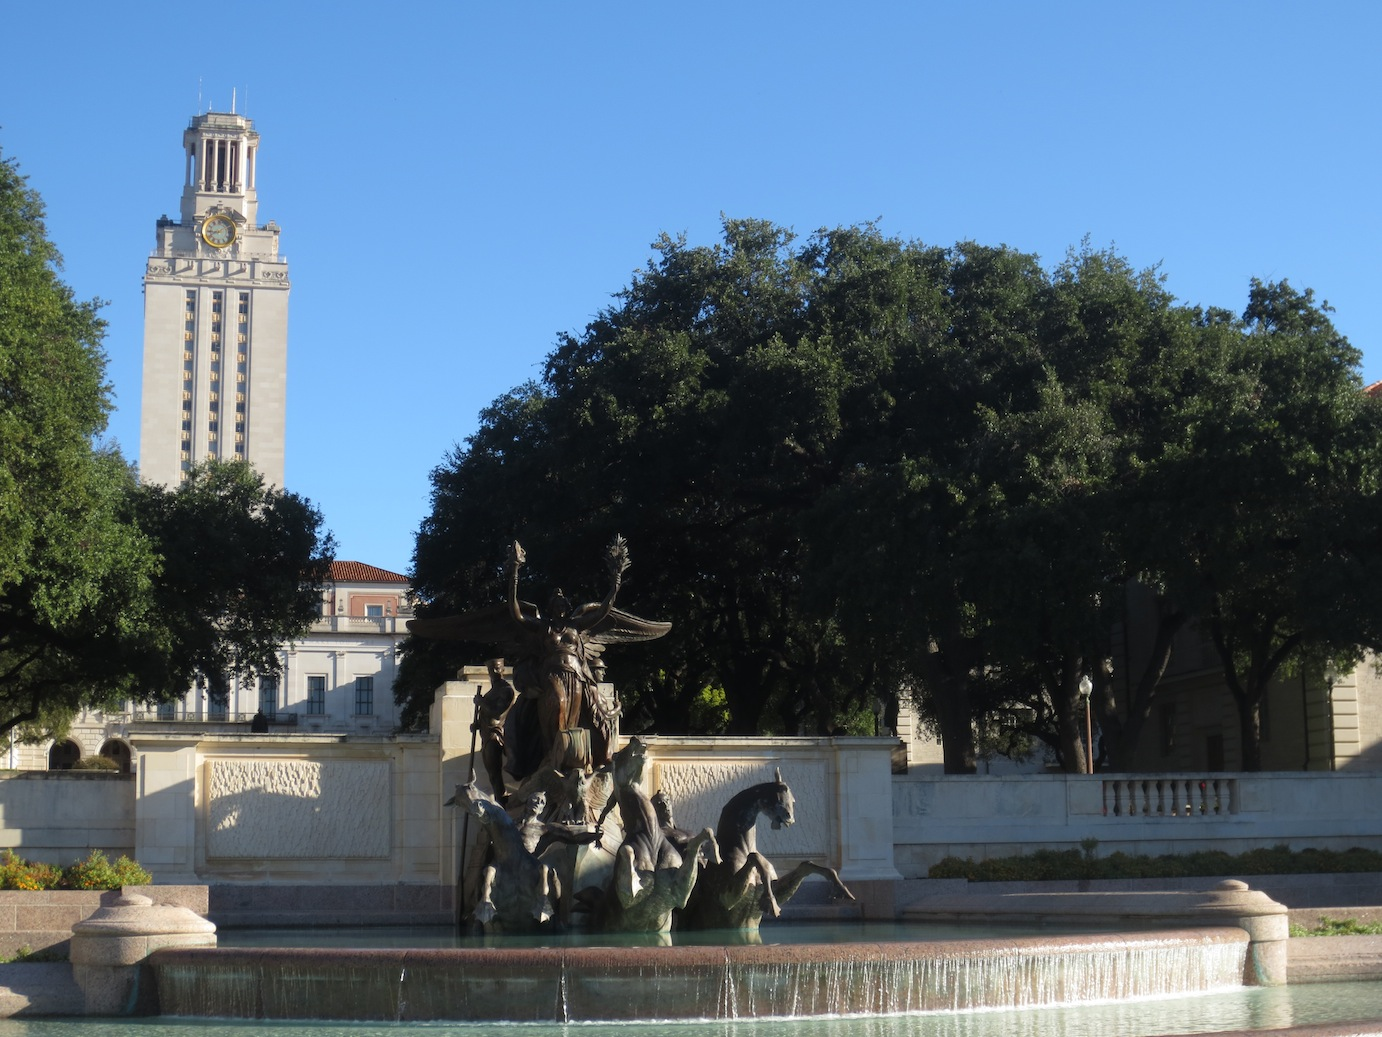 Fountain statue with the UT-Austin Bell Tower in the background.